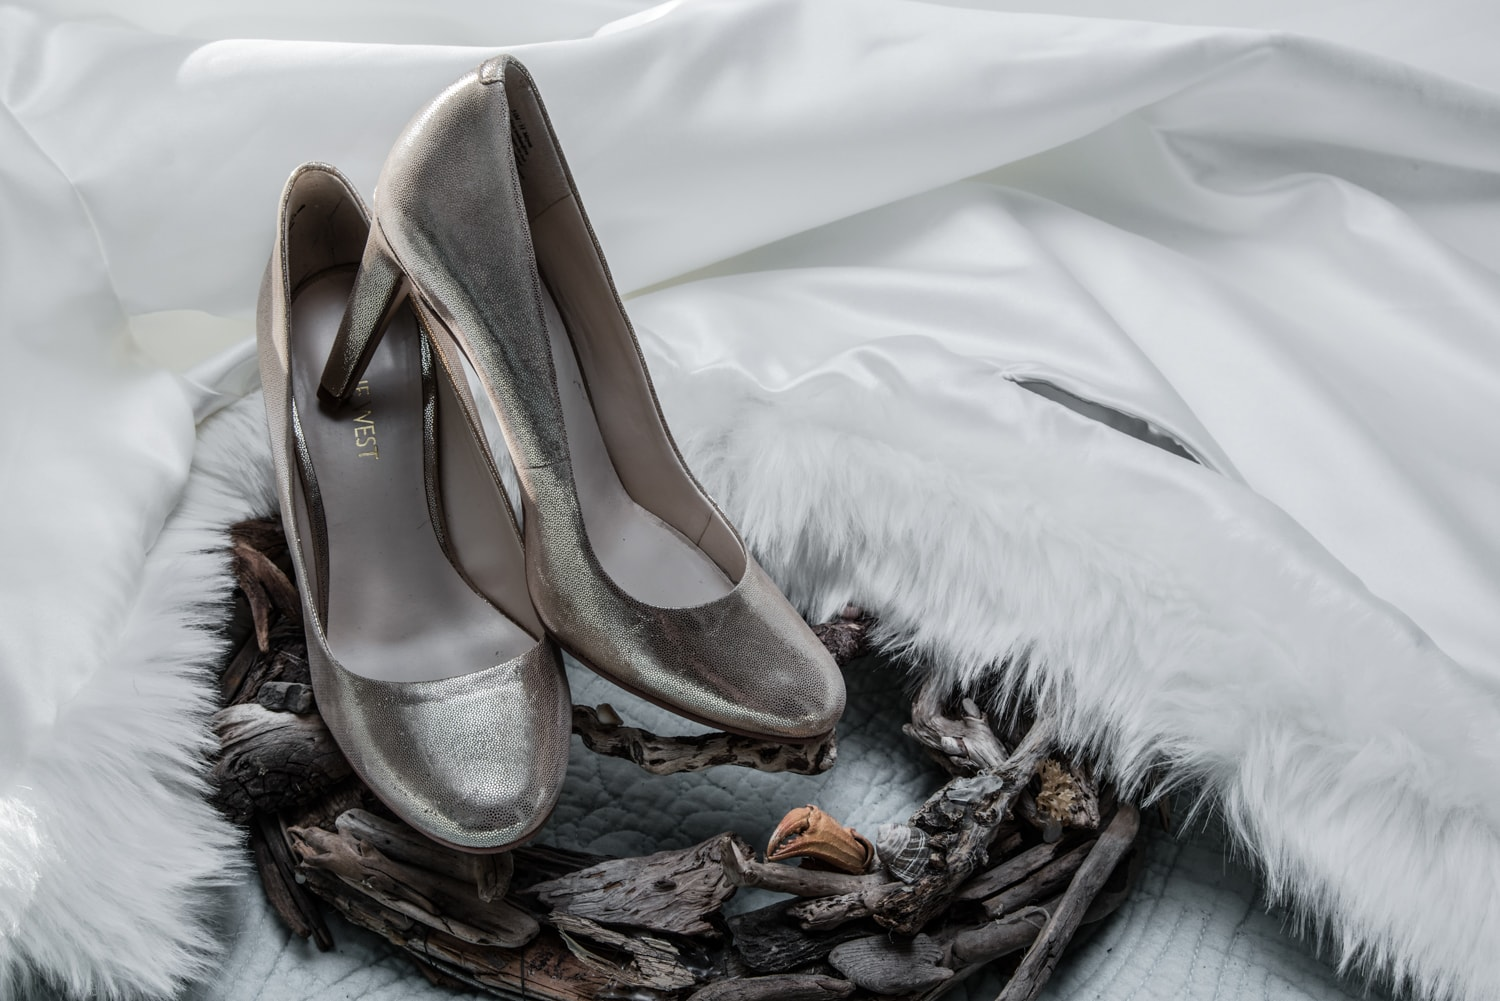 The bride's winter wedding shoes with fur cape.